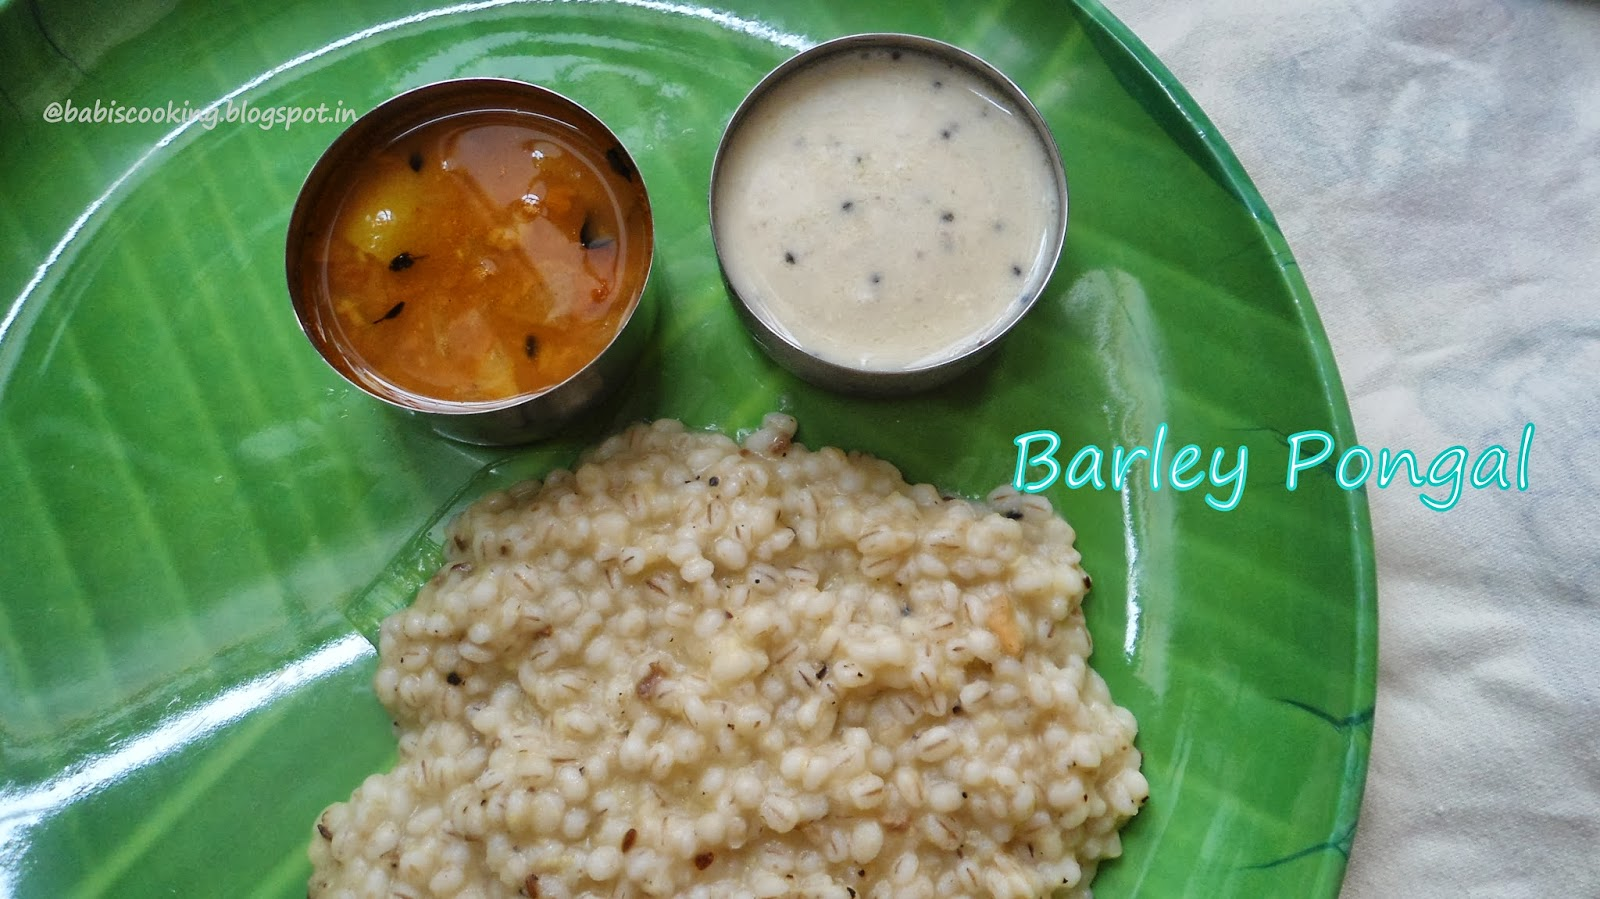 Babi 's Recipes: Barley Pongal | Healthy Indian Breakfast